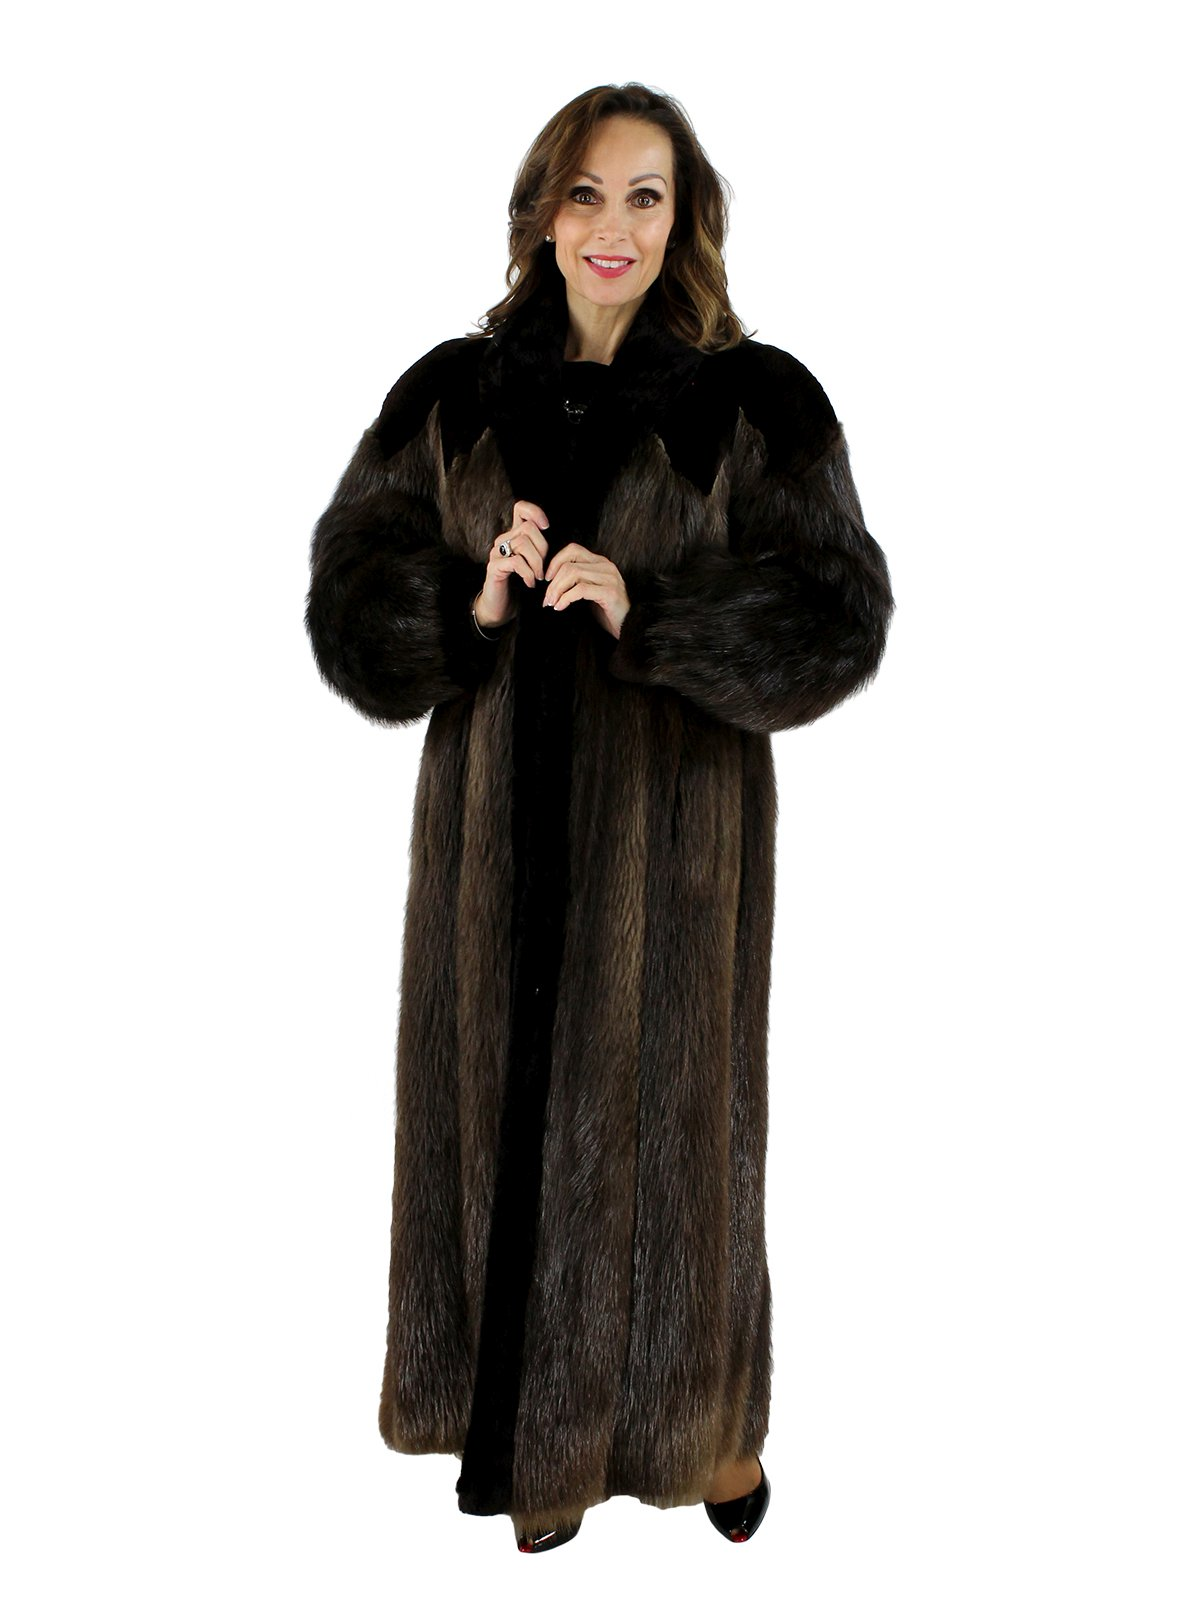 a1c38cda Long Hair Beaver Fur Coat w/ Sheared Beaver Trim - Women's Large | Estate  Furs